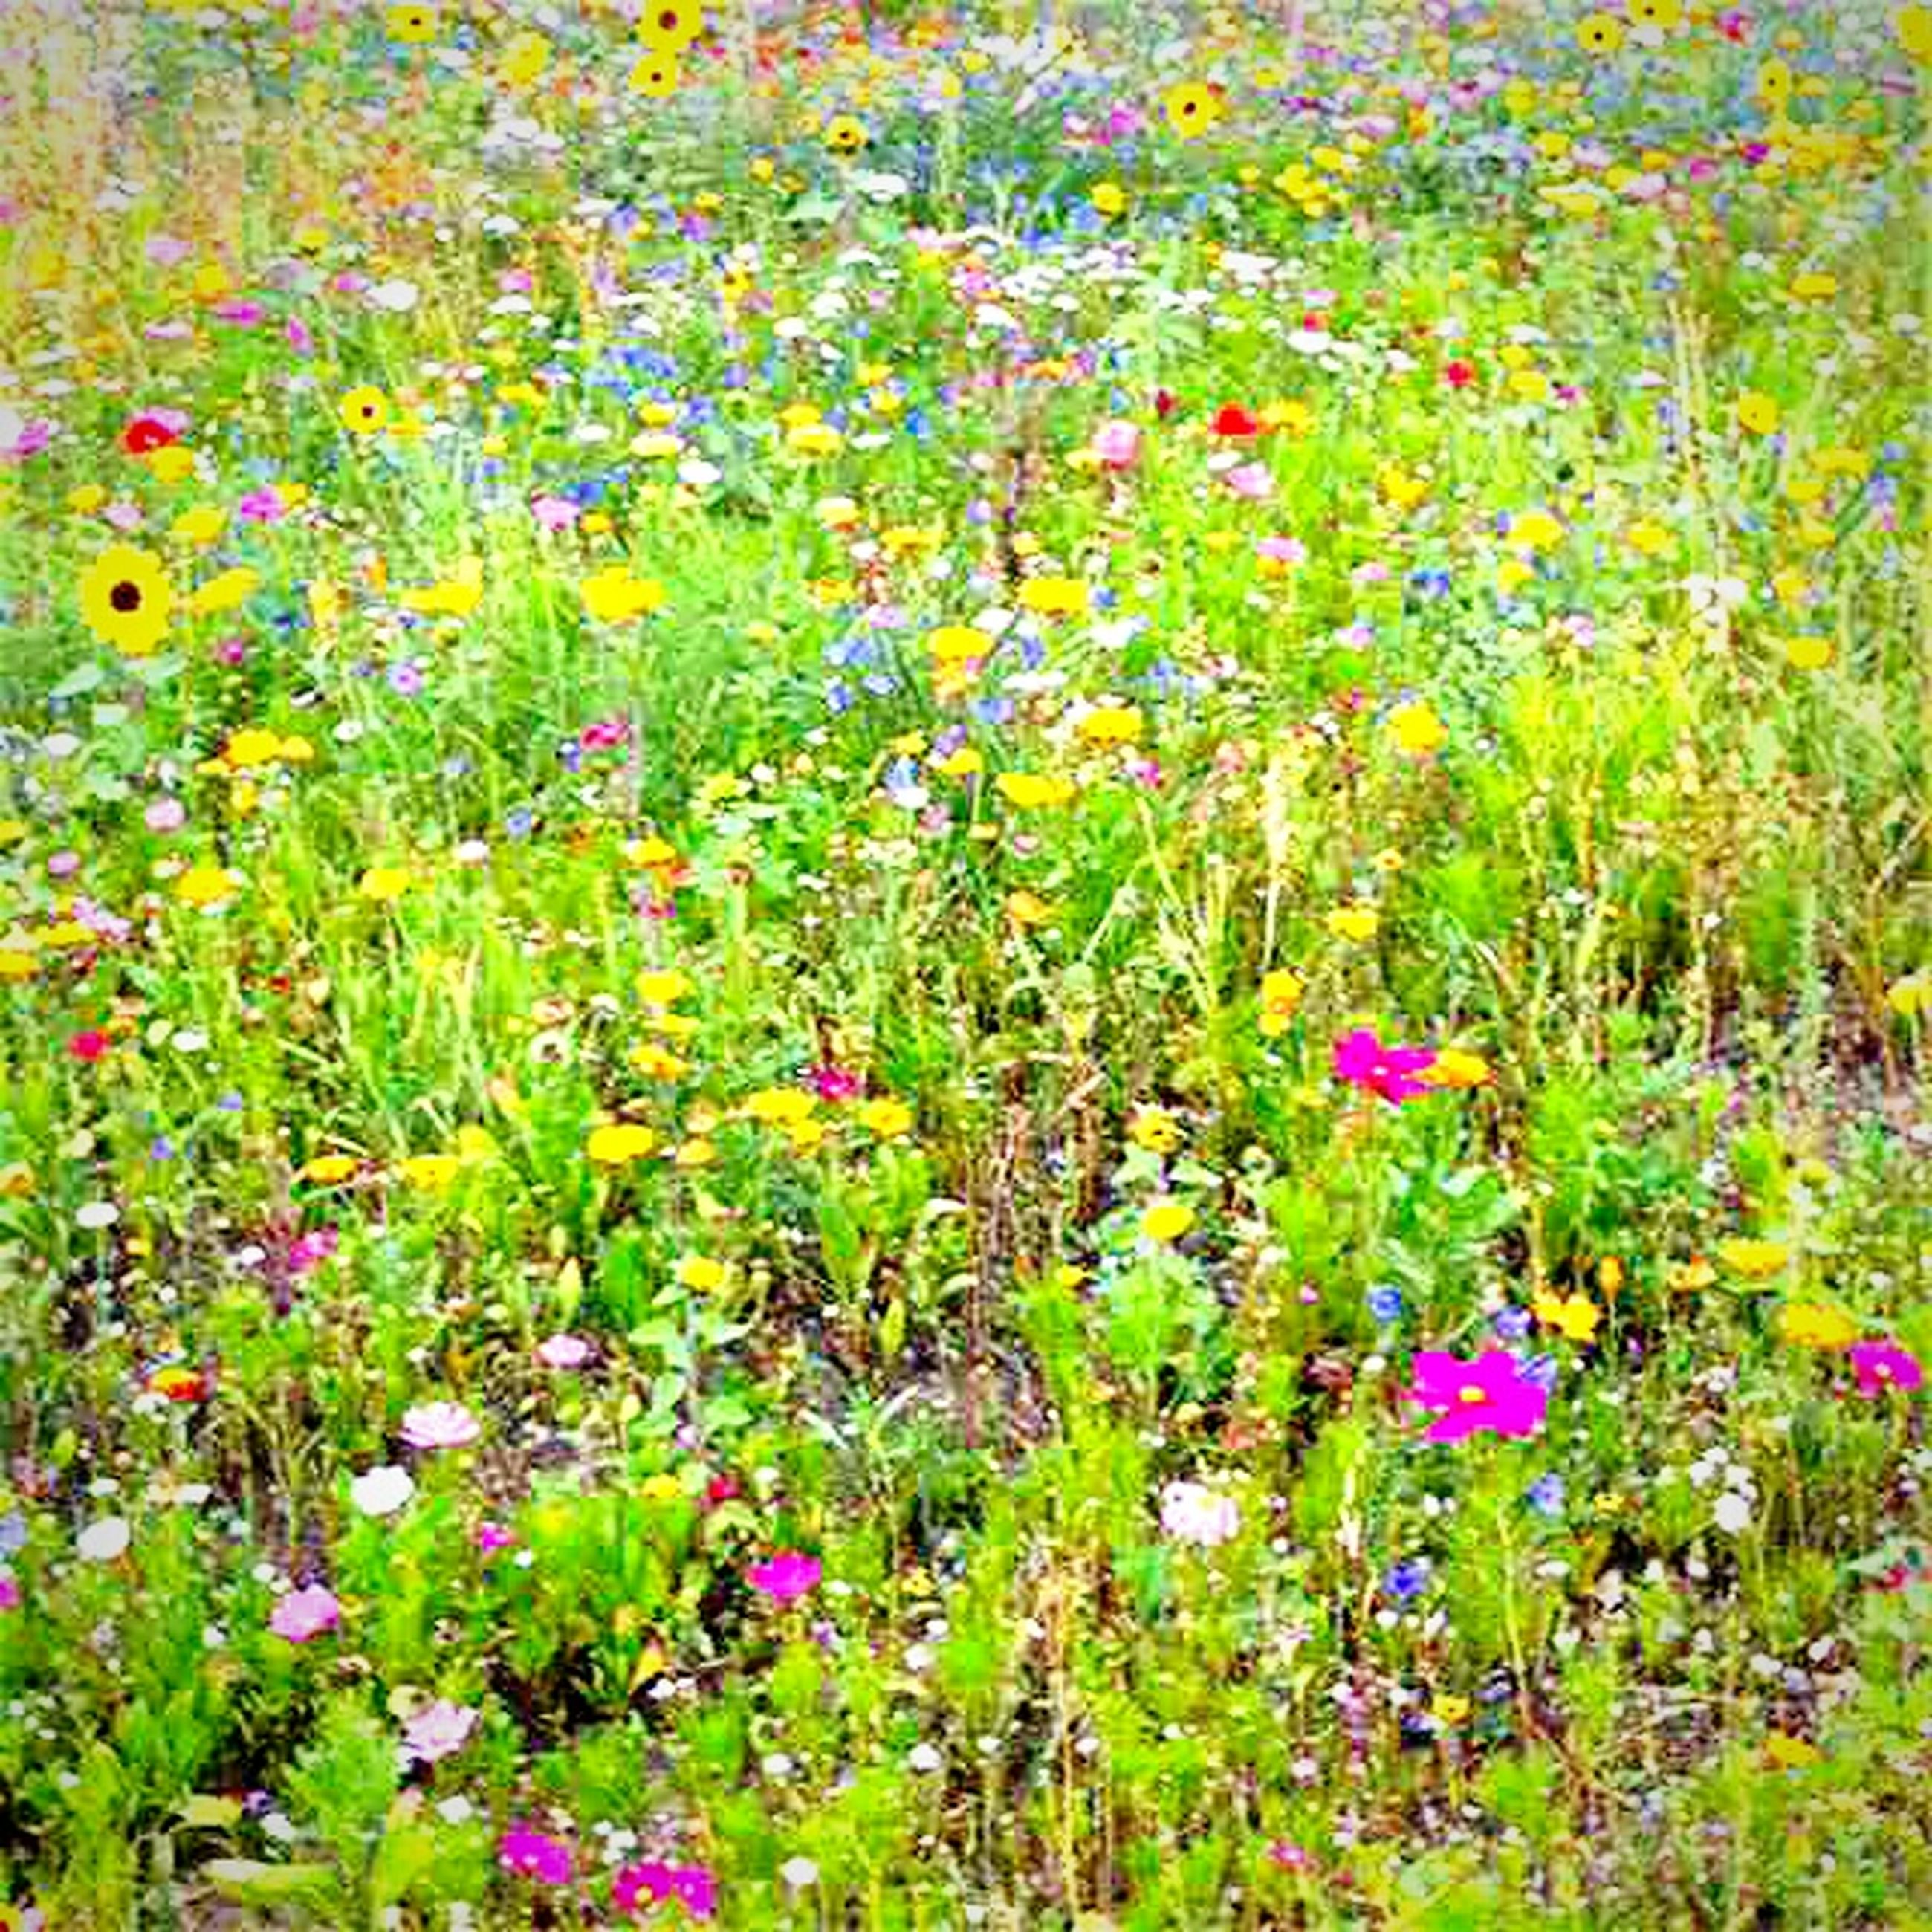 flower, multi colored, freshness, fragility, colorful, growth, beauty in nature, plant, nature, variation, day, wildflower, full frame, petal, springtime, formal garden, flower head, in bloom, outdoors, blooming, flowerbed, tranquility, abundance, no people, vibrant color, green color, various, scenics, bloom, garden